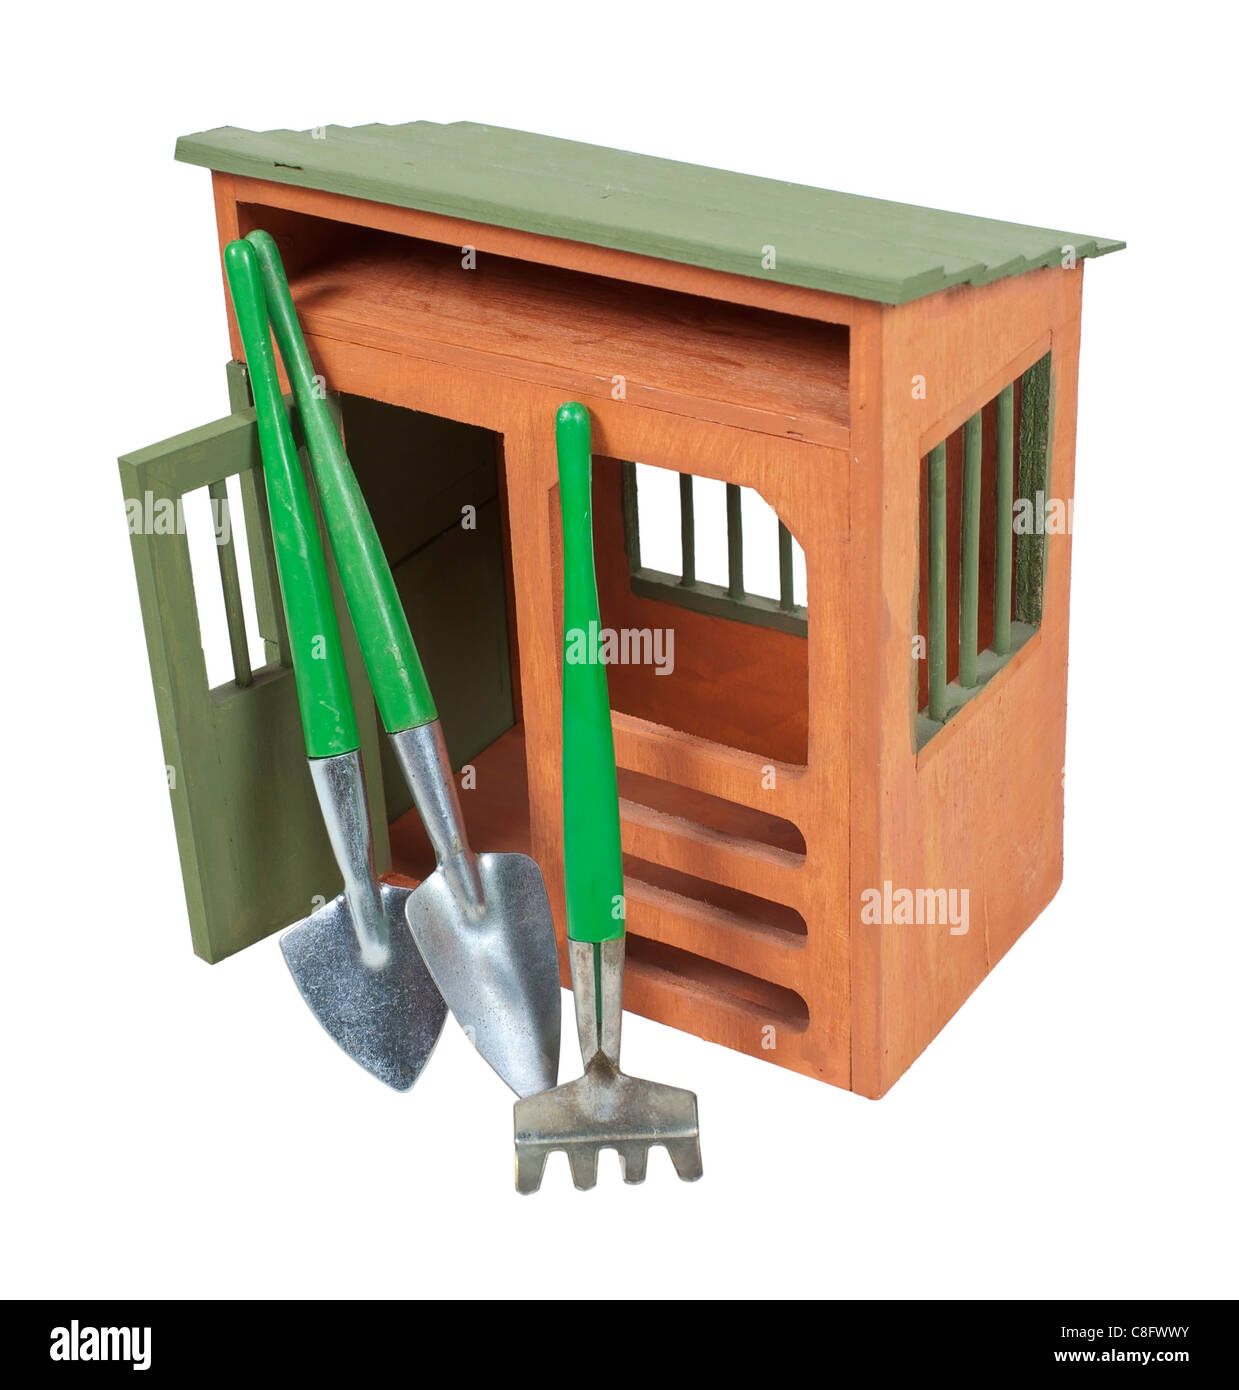 Wooden garden shed with tools for tending plants - path included - Stock Image